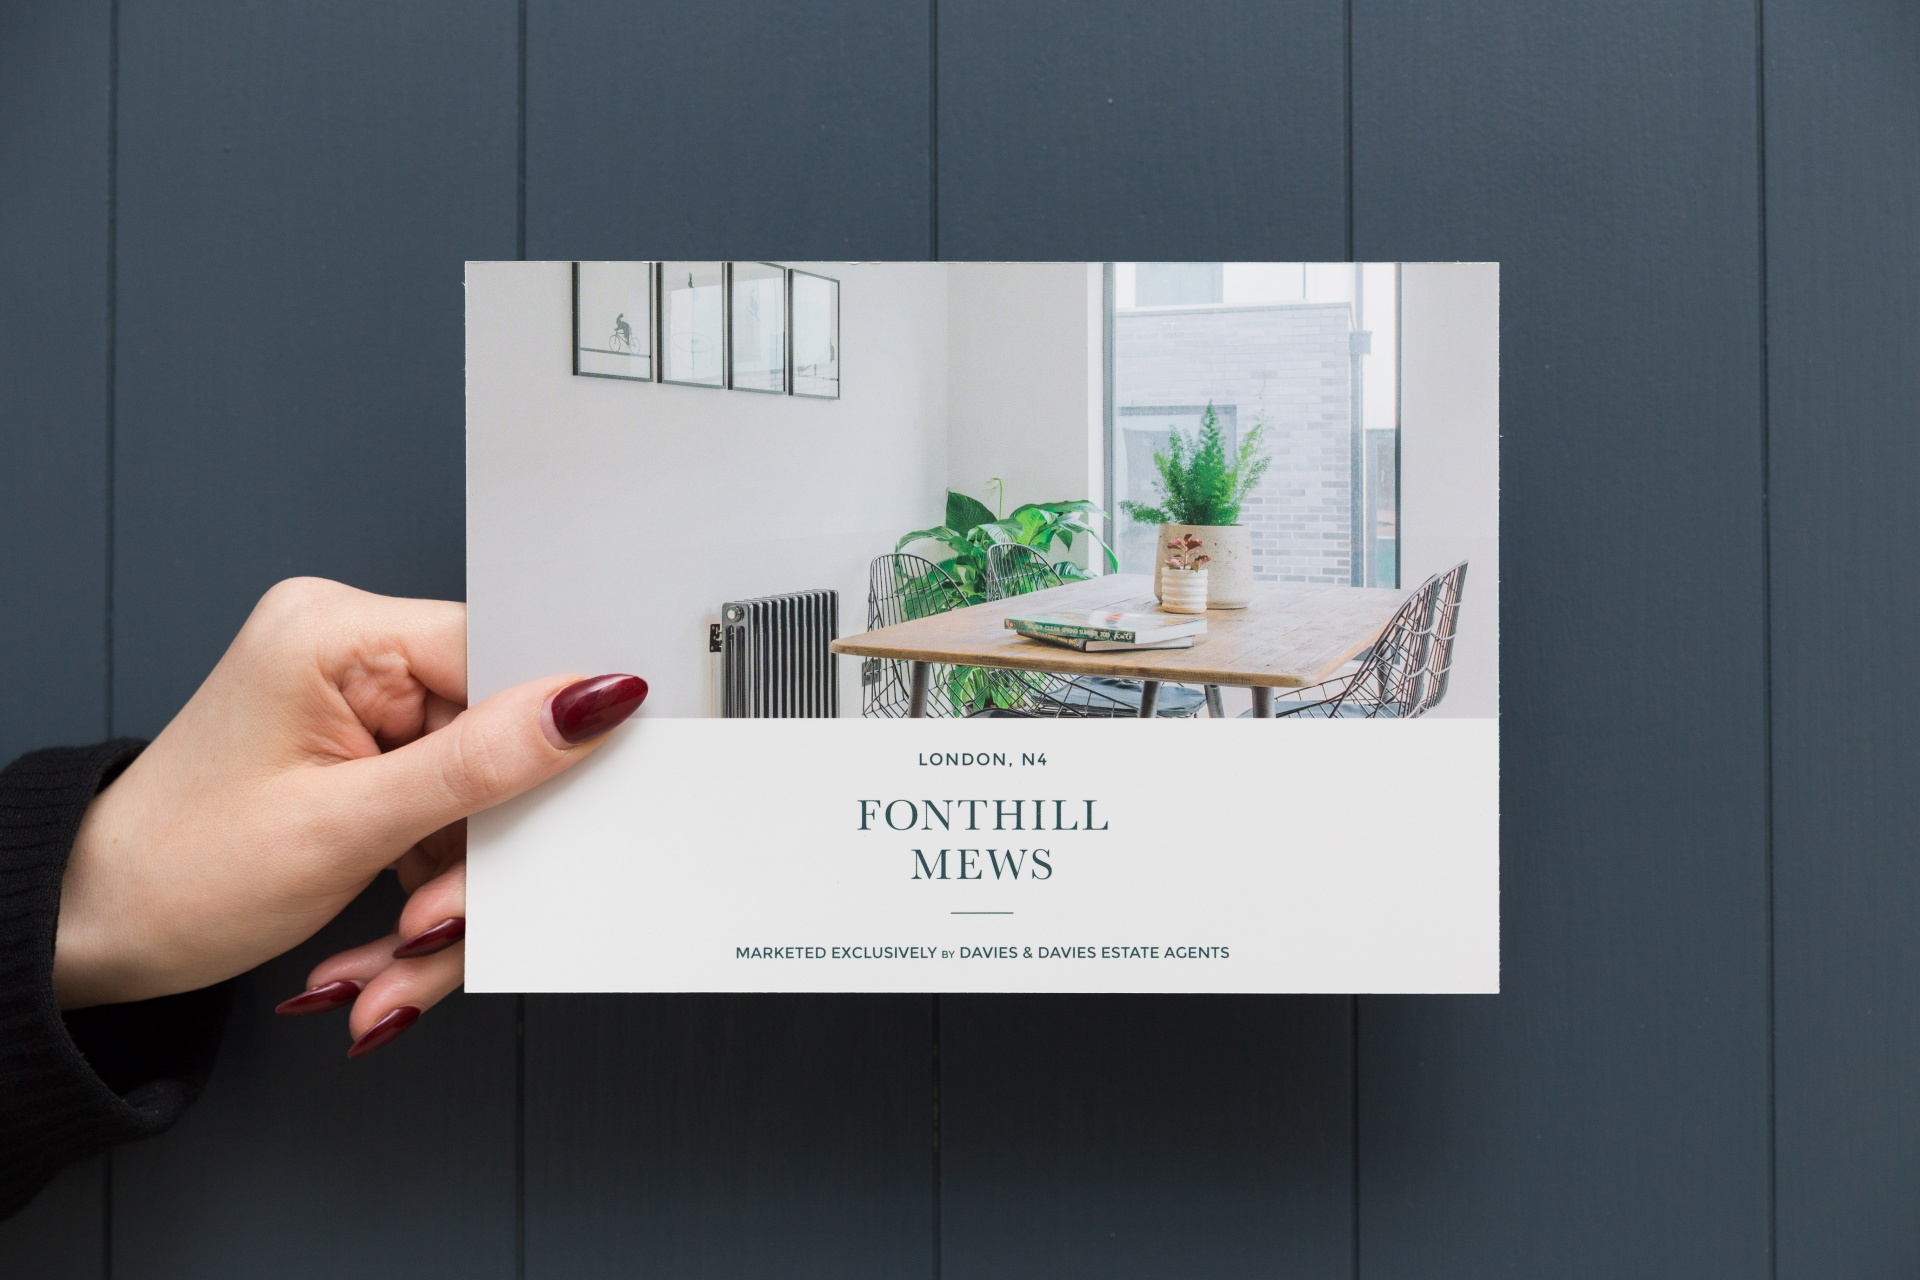 Flyer for Fonthill Mews, Finsbury Park properties. Graphic design by Barefaced Studios, design agency based in Islington, North London.